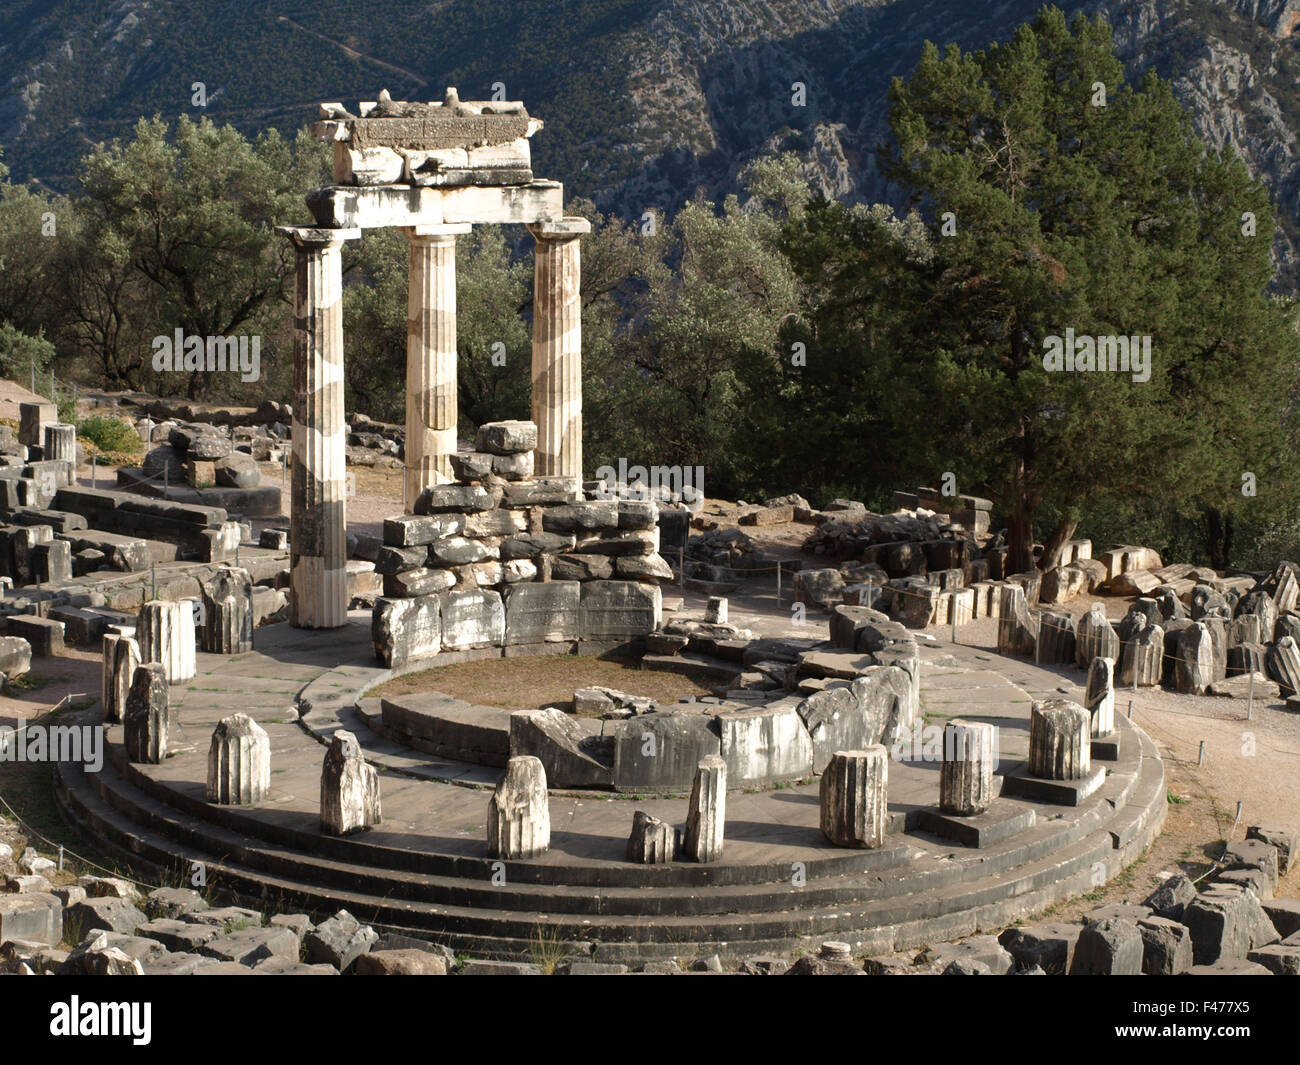 5804. The sanctuary of Athena Pronaia in Delphi. The  circular building is called 'Tholos' was built in c. 380 BC. Stock Photo